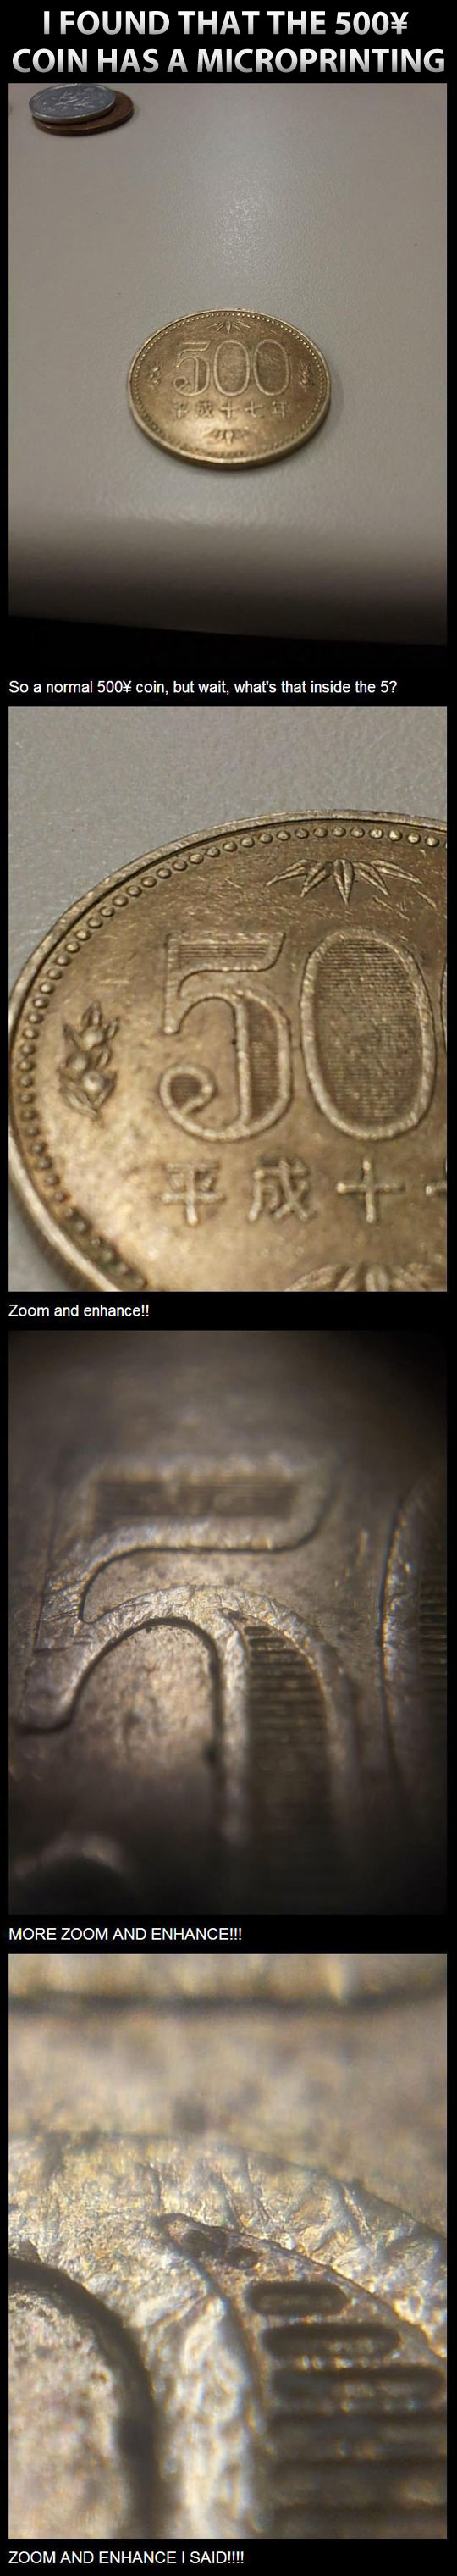 Microprinted coin...